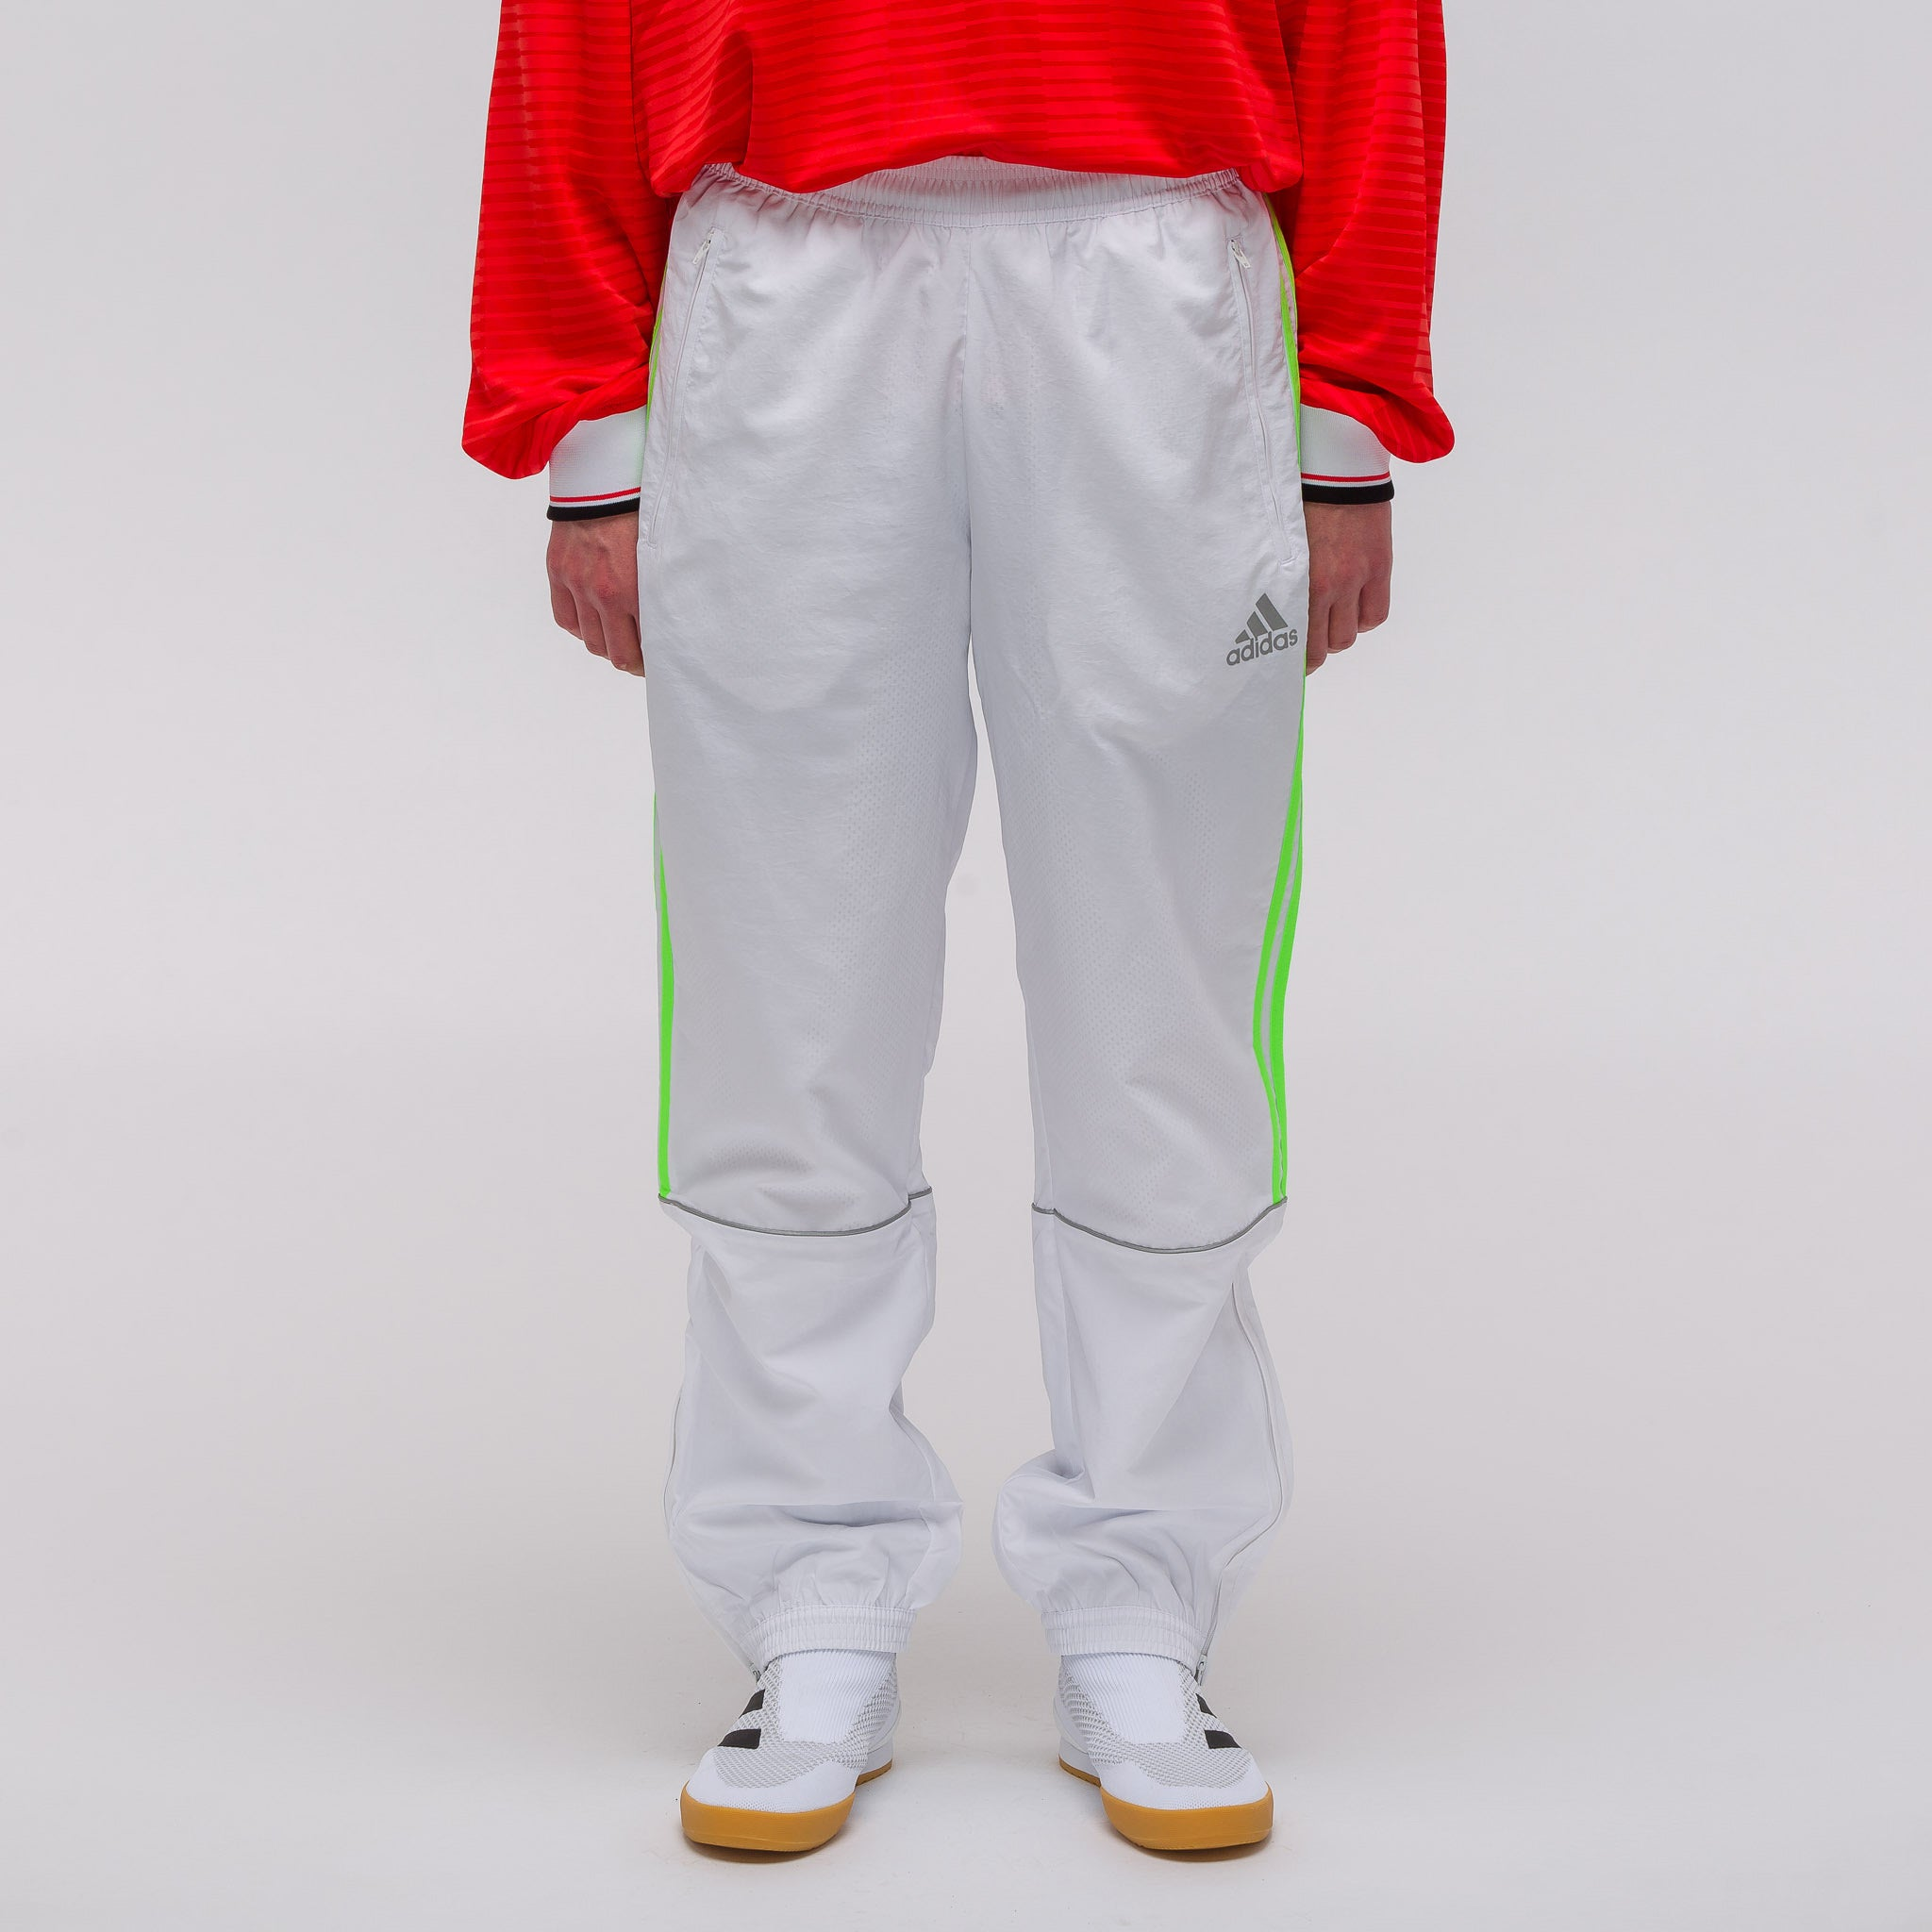 x Adidas Track Pants in White